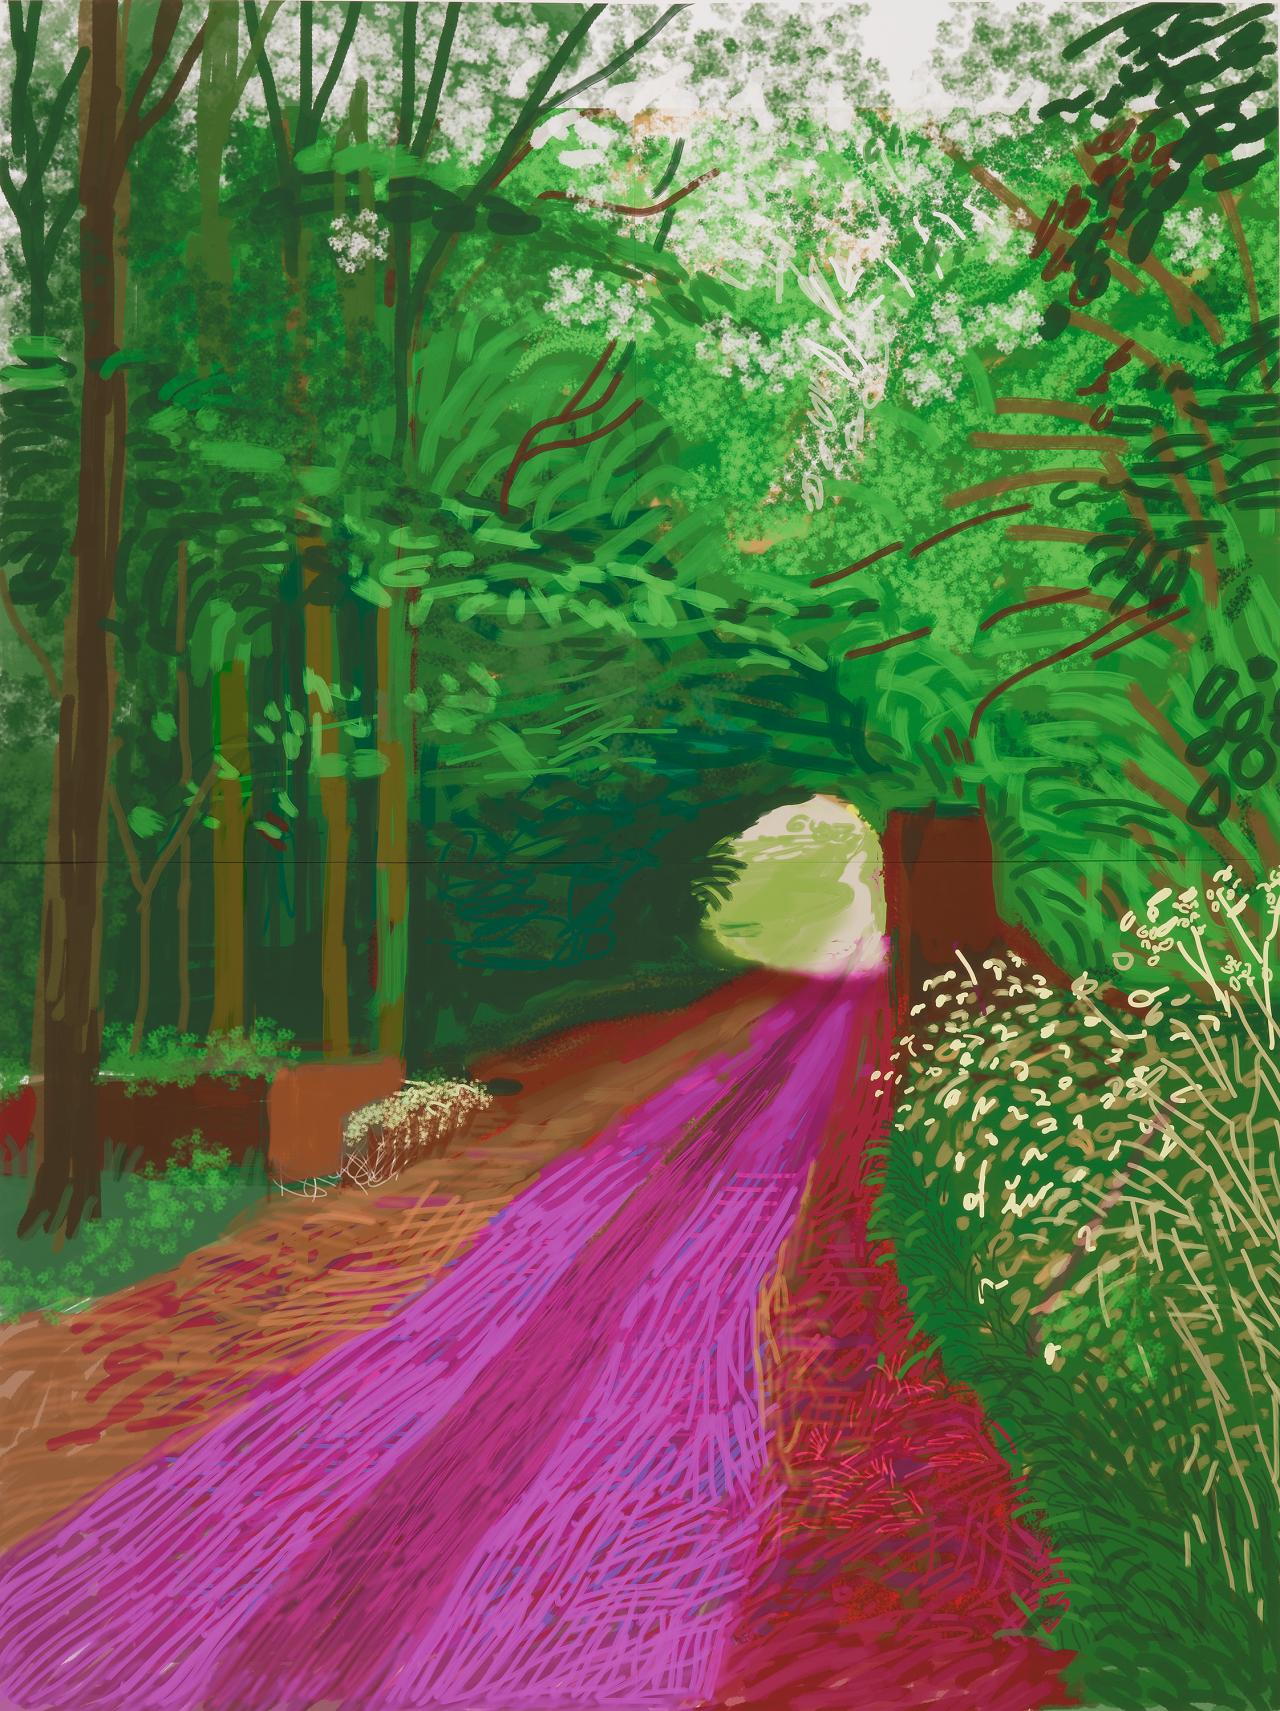 David Hockney<br/> English 1937&ndash;<br/> The arrival of spring in Woldgate, East Yorkshire in 2011 (twenty eleven) &ndash; 31 May, No. 1 (900)<br/>  iPad drawing printed on 6 sheets of paper mounted on Dibond<br/> 290.8 x 218.4 cm (overall)<br/> Collection of the artist<br/> &copy; David Hockney<br/> Photo Credit: Richard Schmidt